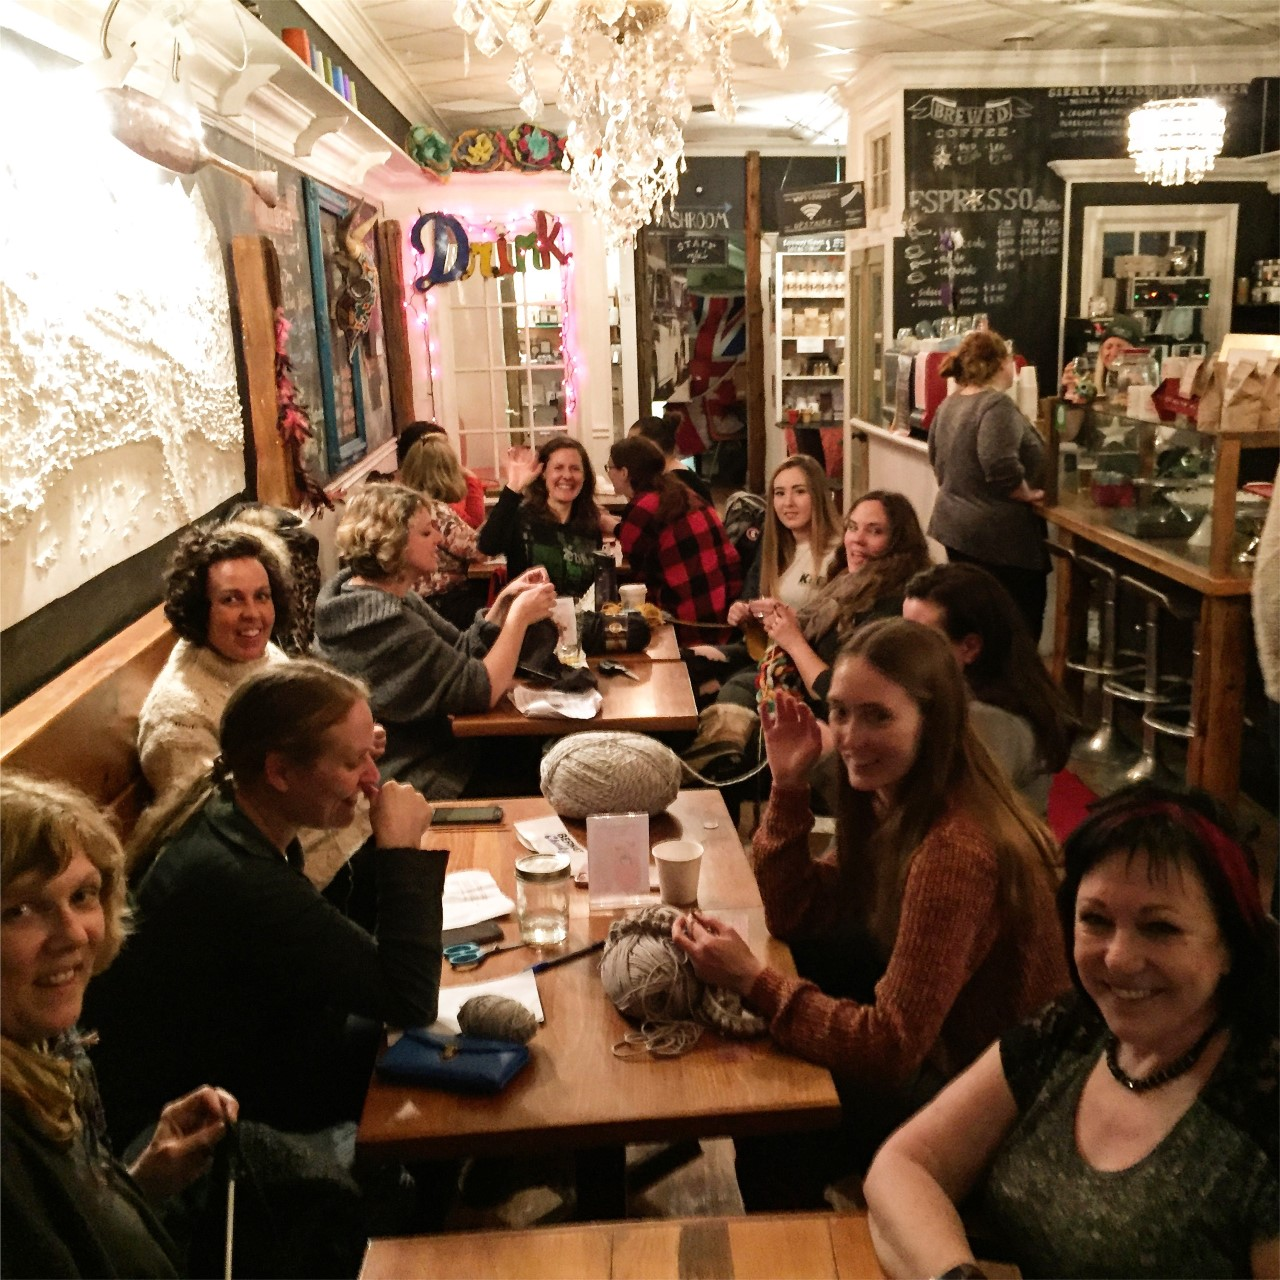 Knitting club — Kathleen has made Kawartha Coffee available to local groups for many years